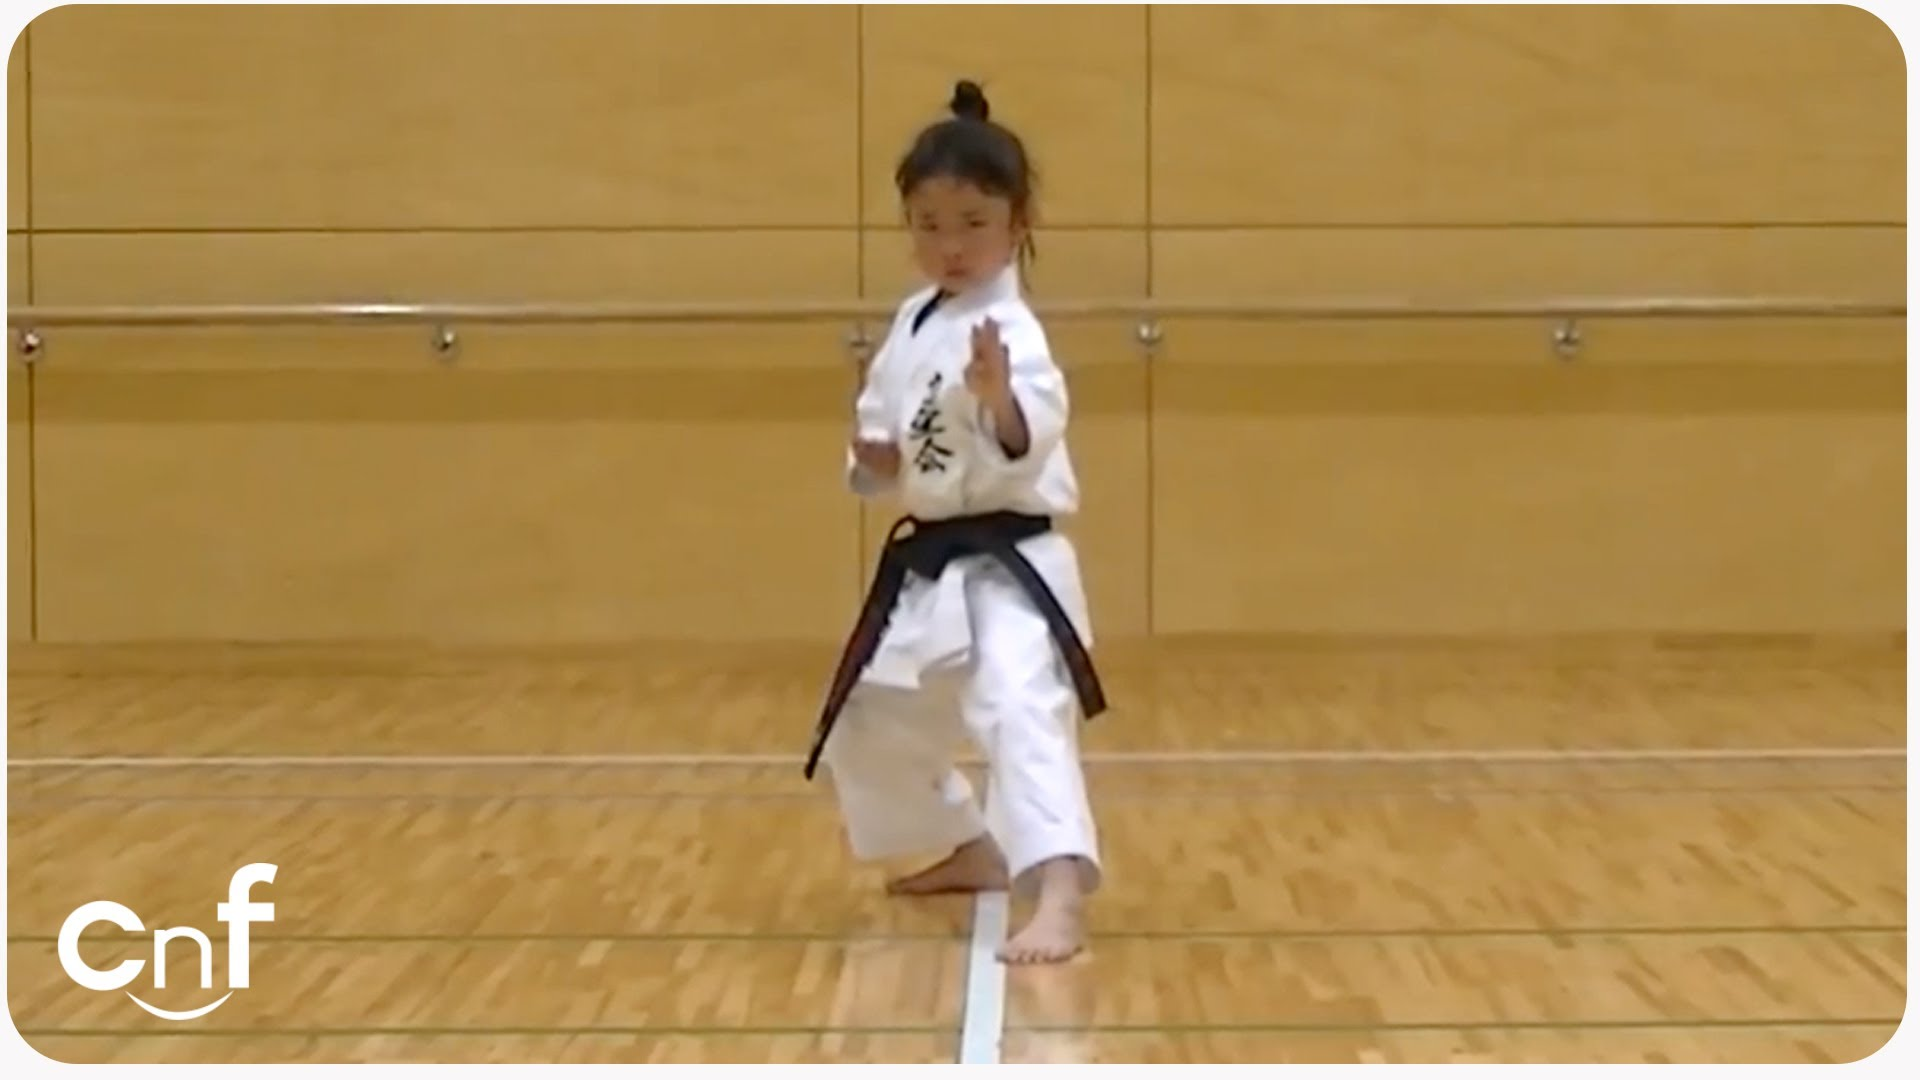 7 Year Old Girl Karate Master Incredible Kankudai Demo besides Rio Olympics Great Britain Adam Peaty Team GB Swimming Gold Medal World Record News furthermore 3553025 together with 562fd01a268e3eaf668b4571 likewise Rat Kids Rio Earn 1 Day Sifting Raw Sewerage Bay Hosting Olympic Sailing Just EIGHT WEEKS. on greg rutherford